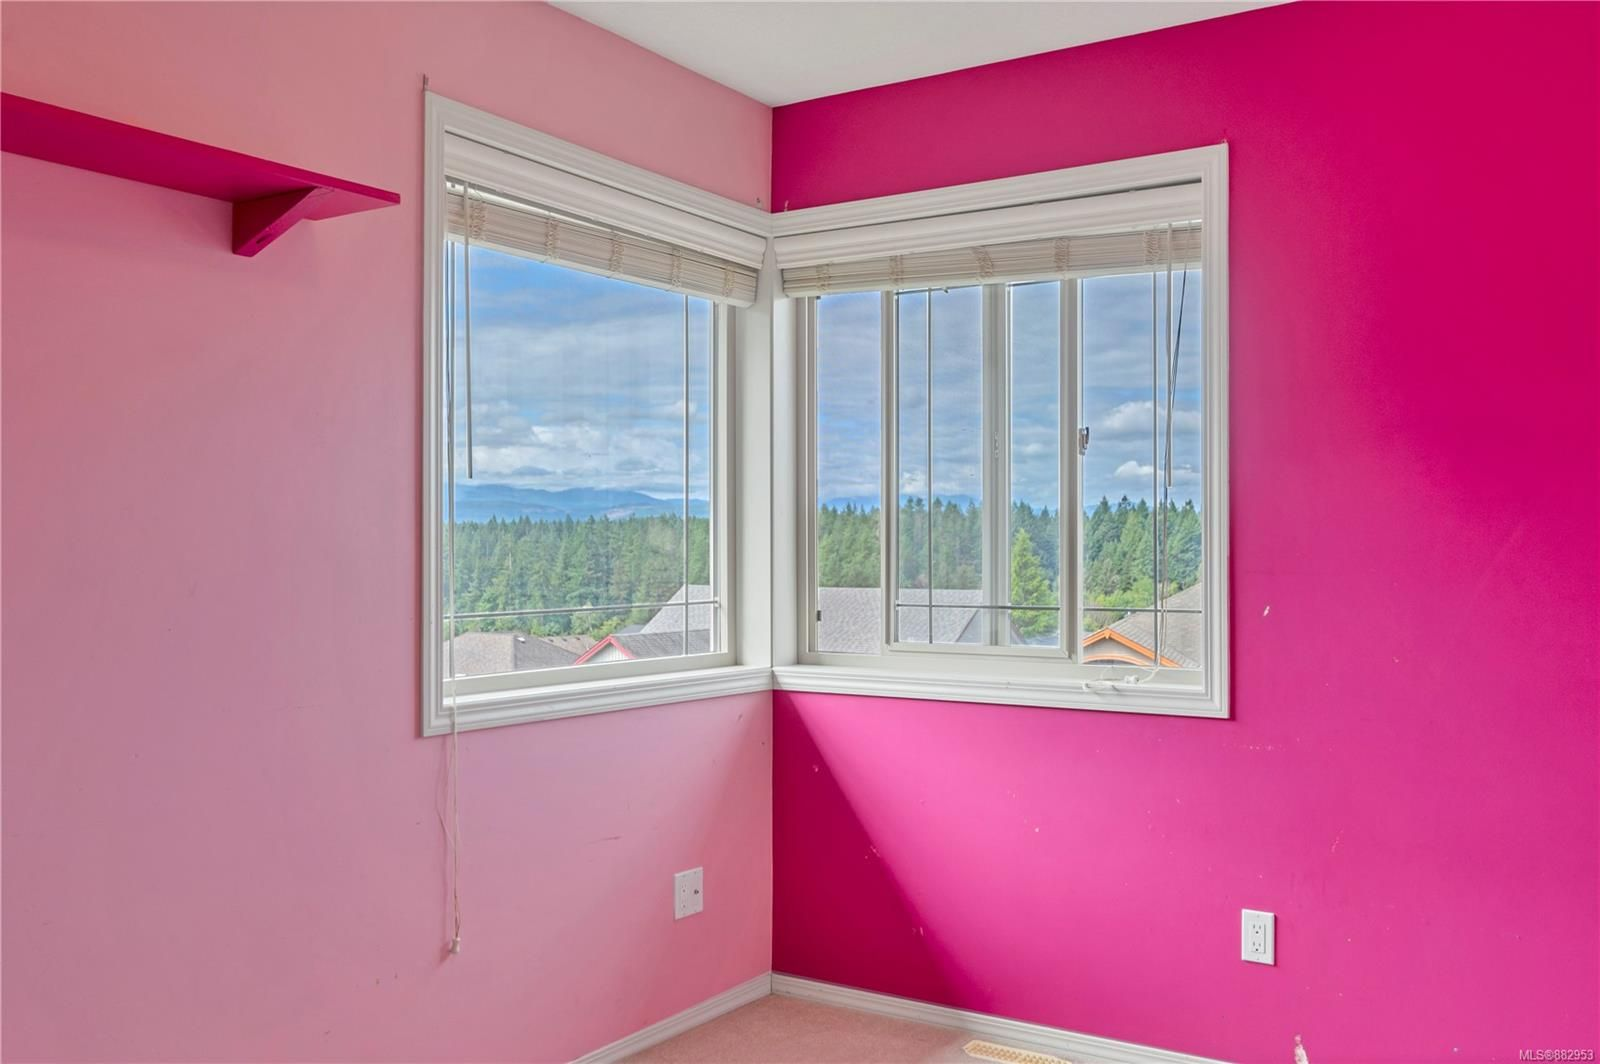 Photo 36: Photos: 732 Oribi Dr in : CR Campbell River Central House for sale (Campbell River)  : MLS®# 882953